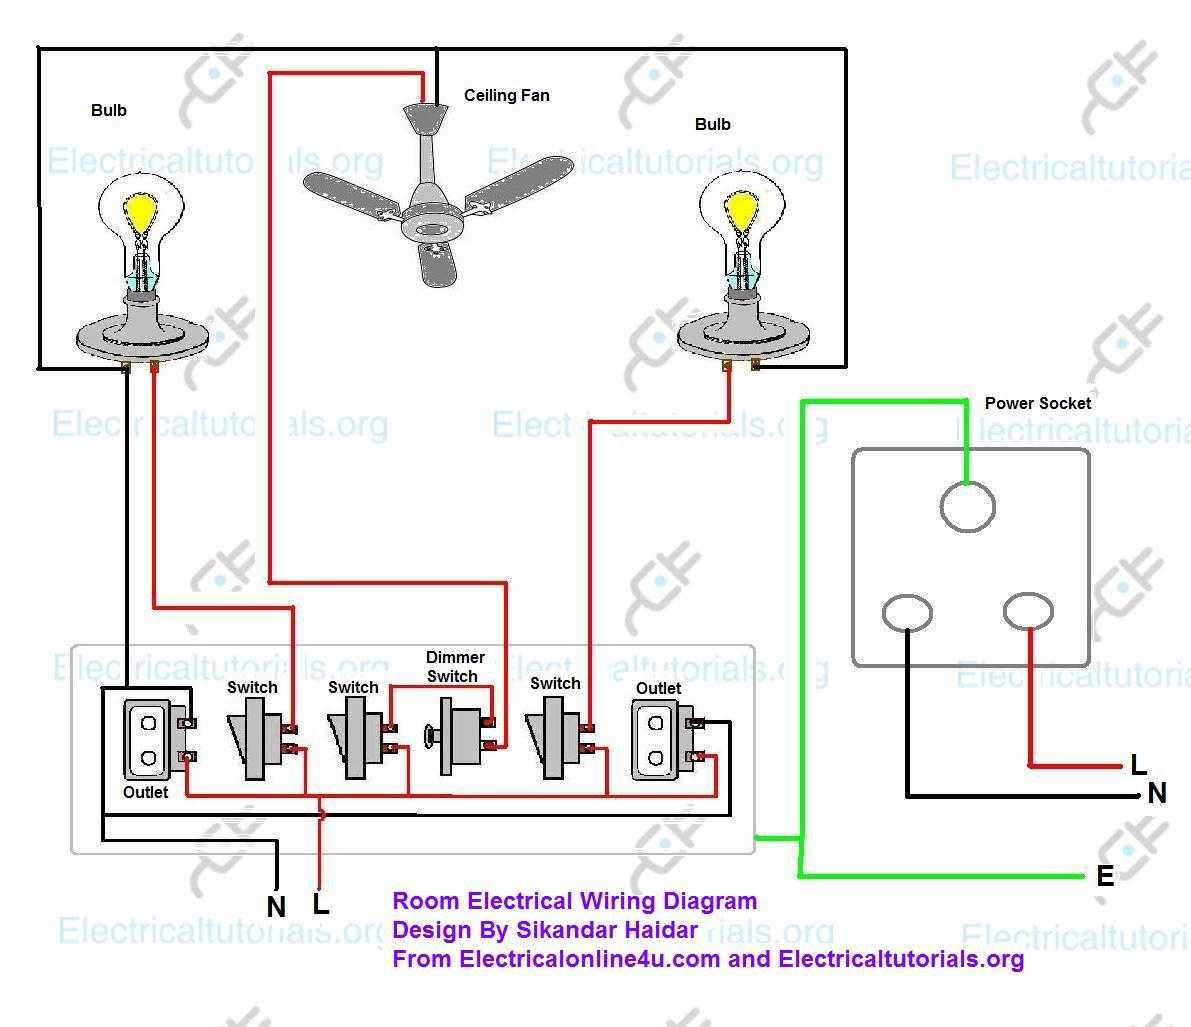 electric circuit drawing at getdrawings com free for personal use rh getdrawings com basic home electrical wiring tutorial basic home electrical wiring tutorial